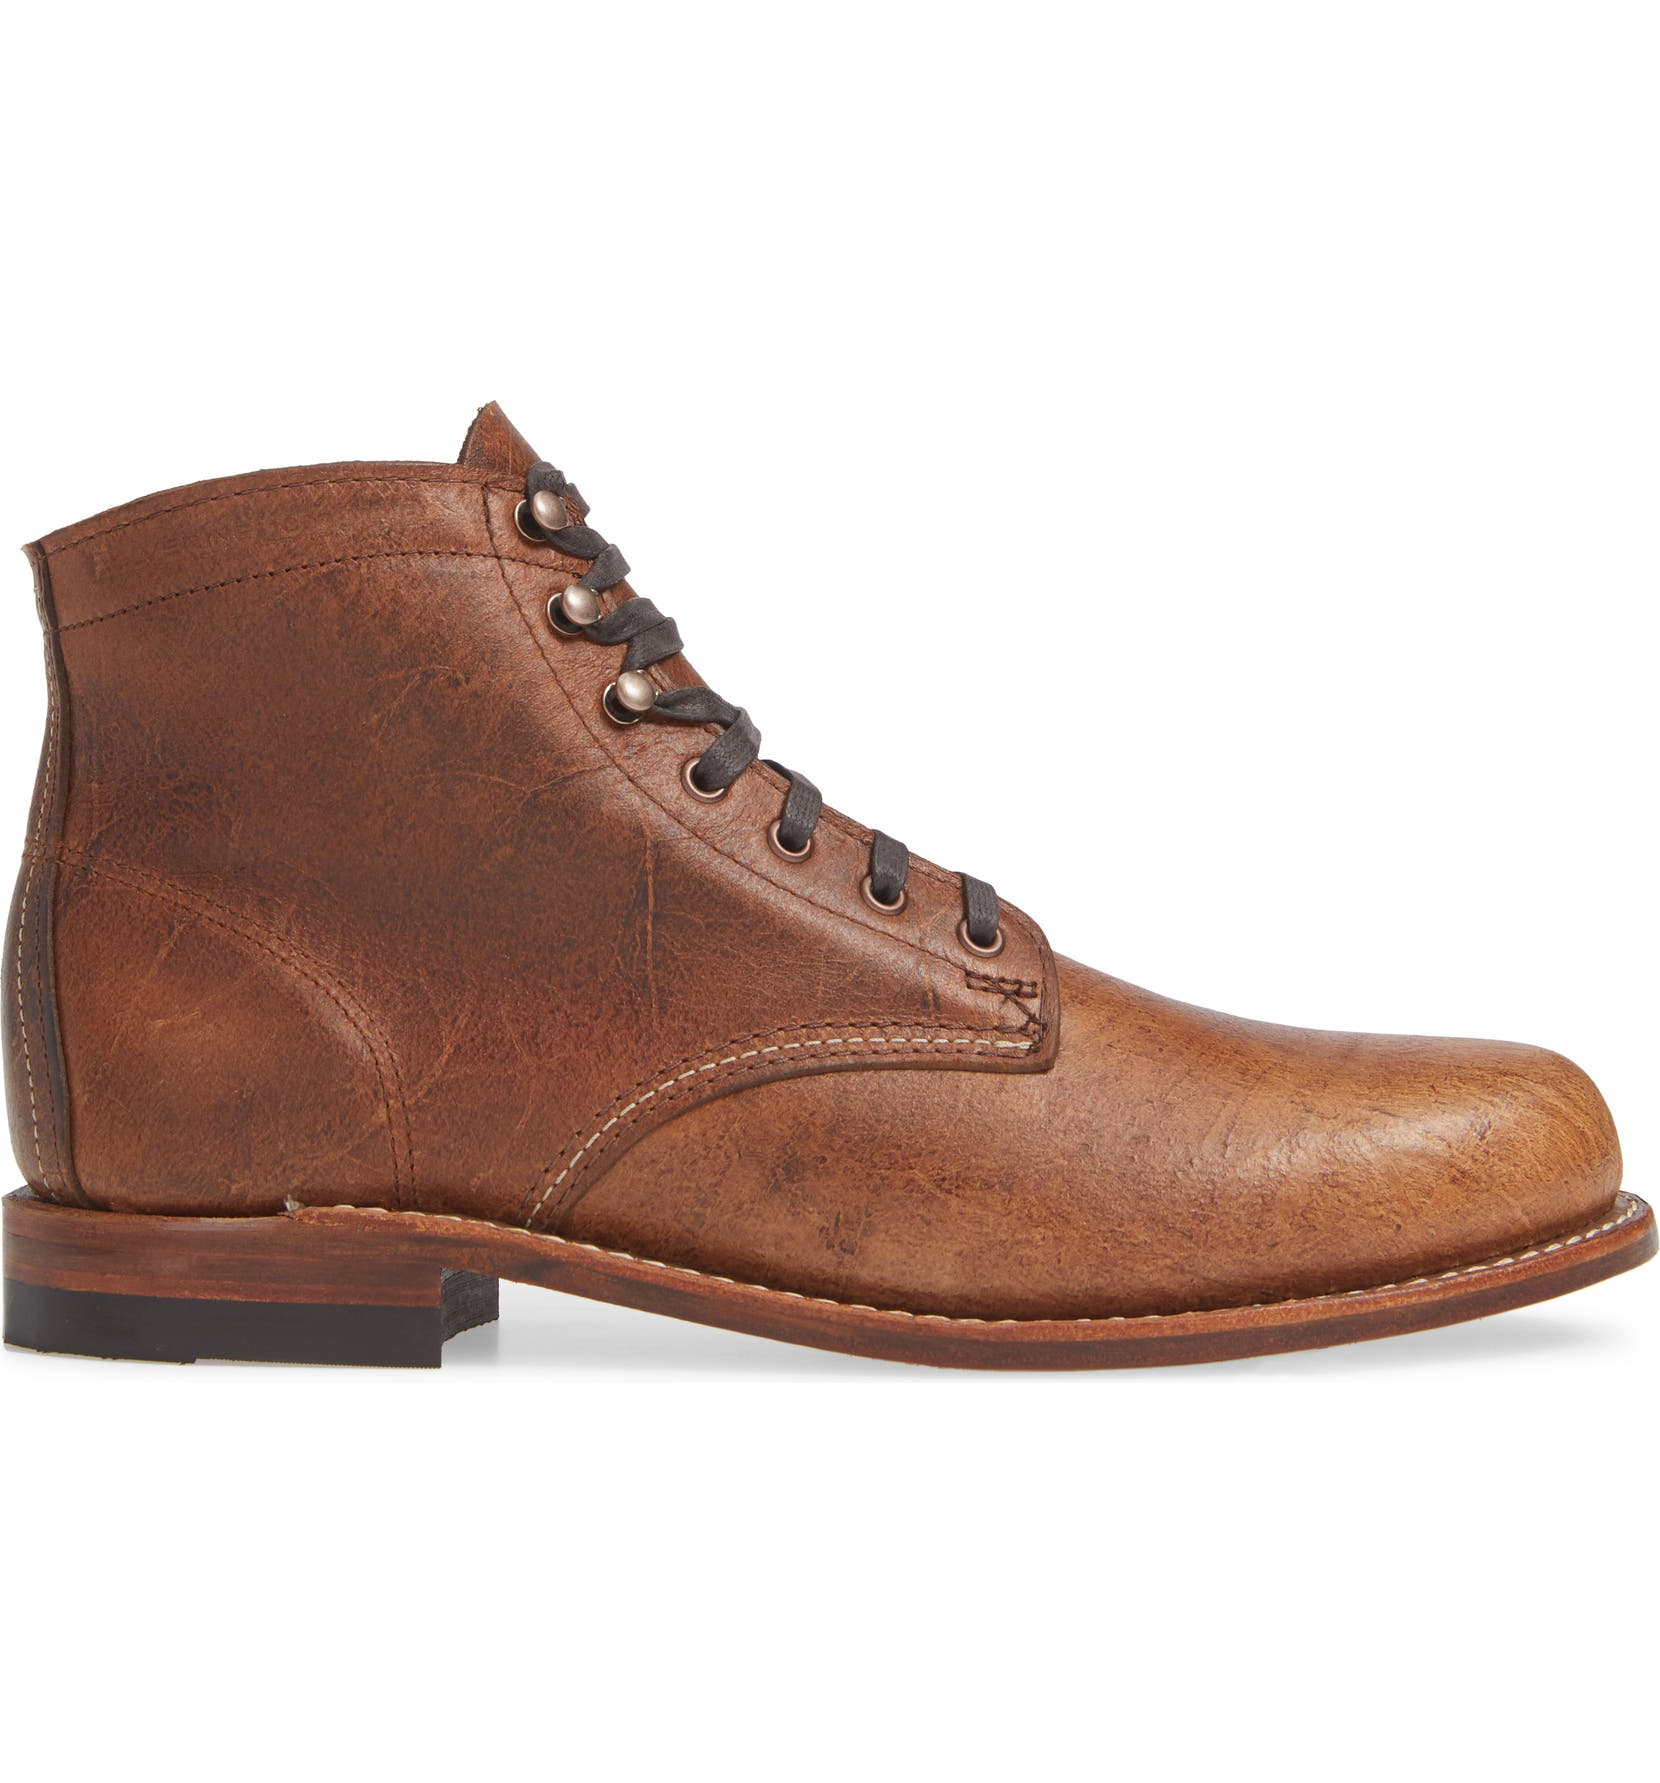 3121982199e '1000 Mile' Plain Toe Boot